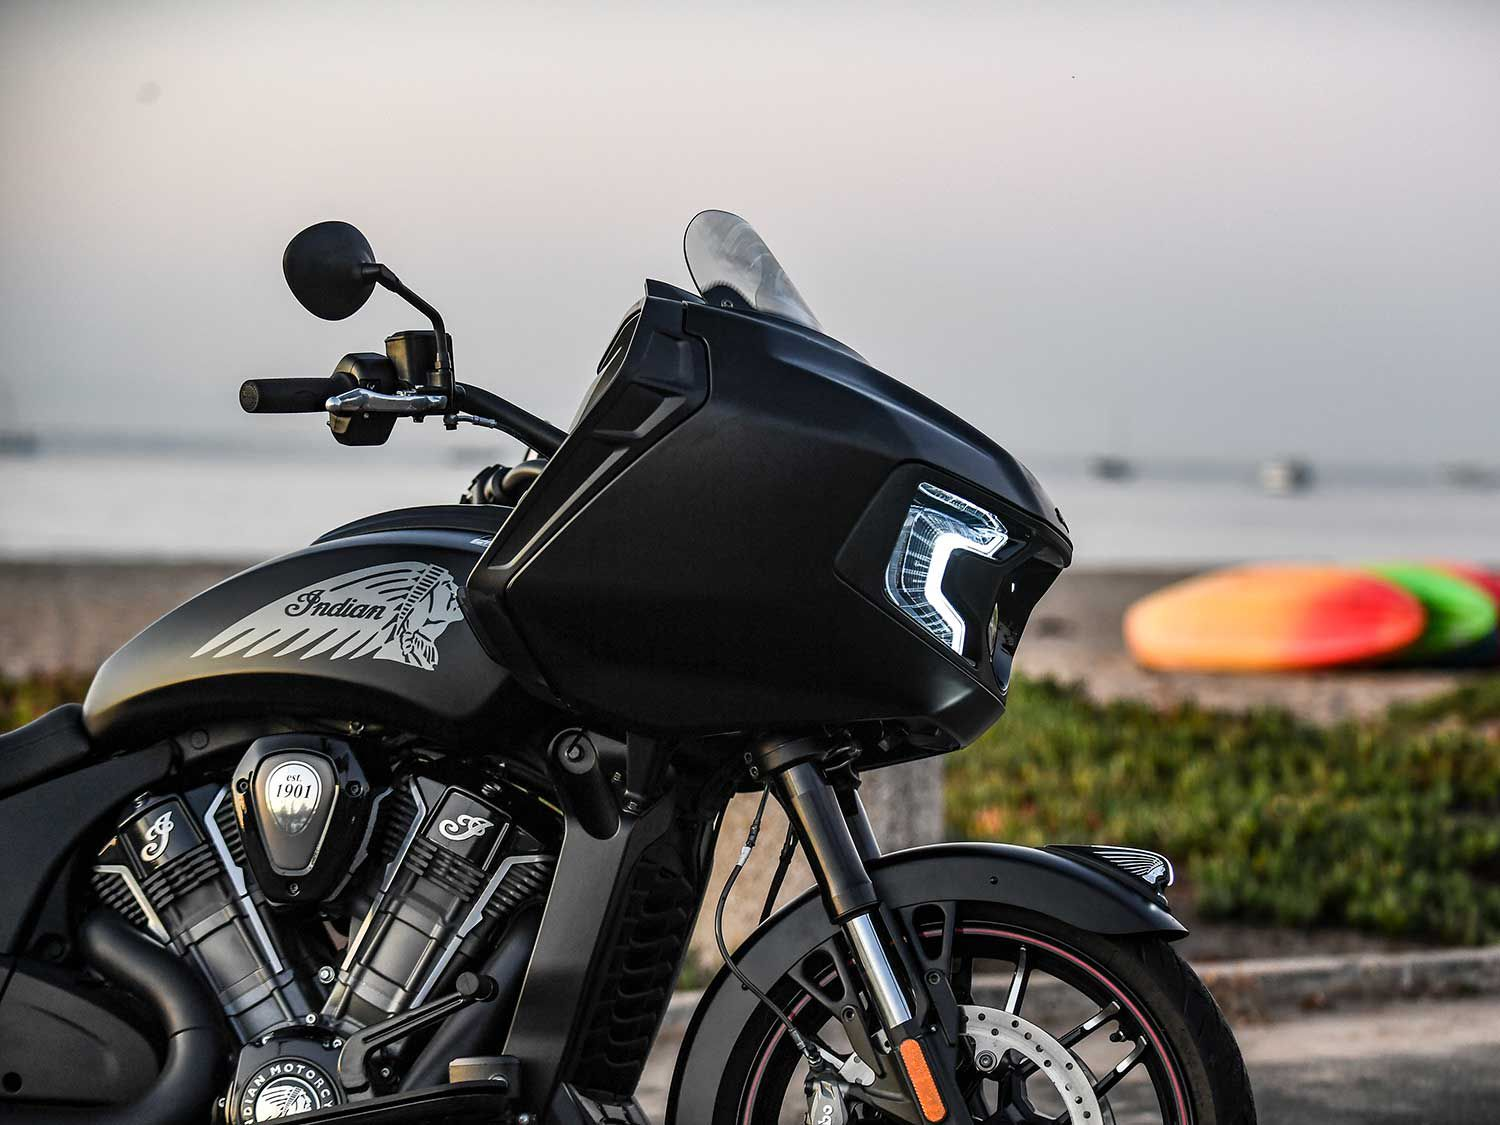 "<a  href=""https://www.motorcyclistonline.com/story/reviews/2020-indian-motorcycle-challenger-dark-horse-review-mc-commute/"">2020 Indian Motorcycle Challenger Dark Horse <em>MC Commute</em> Review </a>"